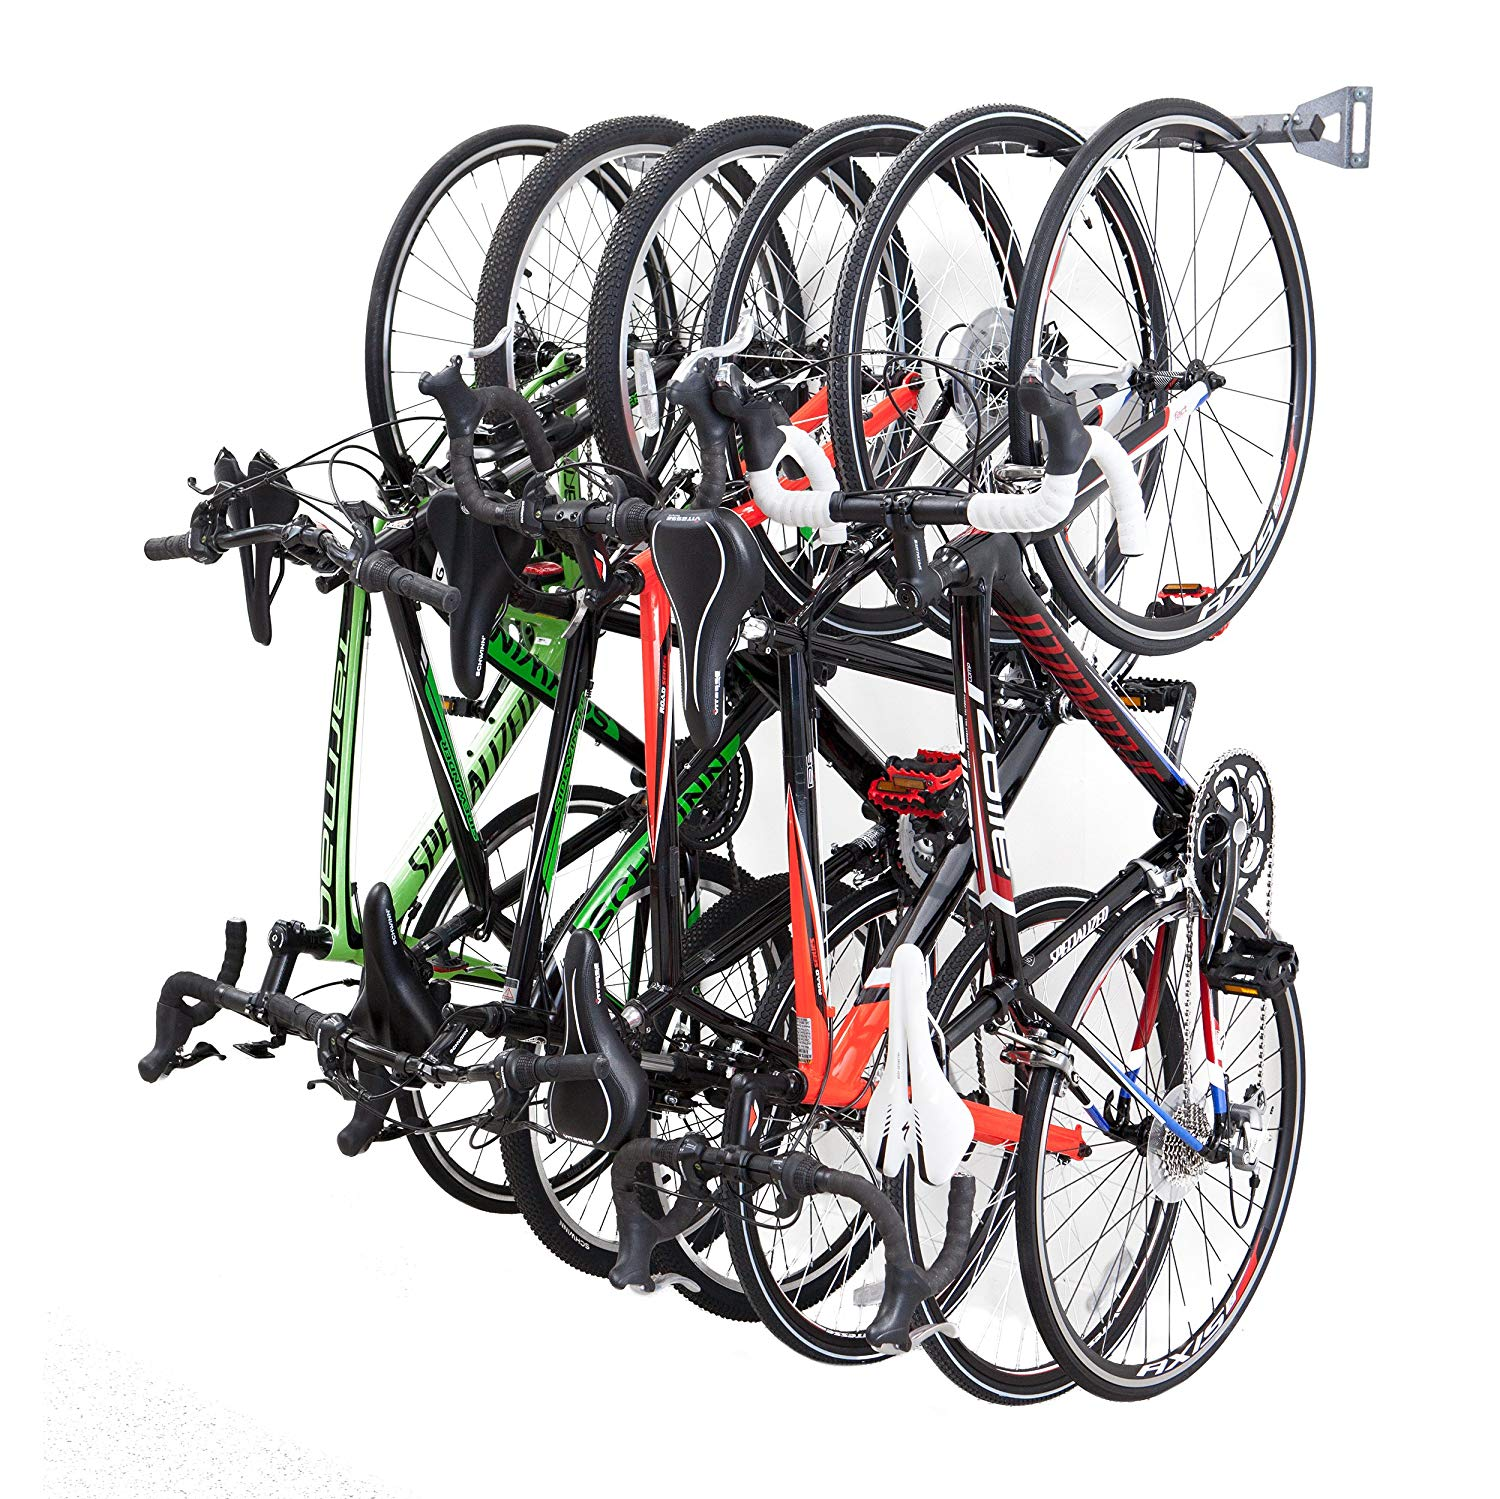 15 Amazing Options For Bike Storage Inside And Outside Coolyeah Garage Organization Caster Wheels